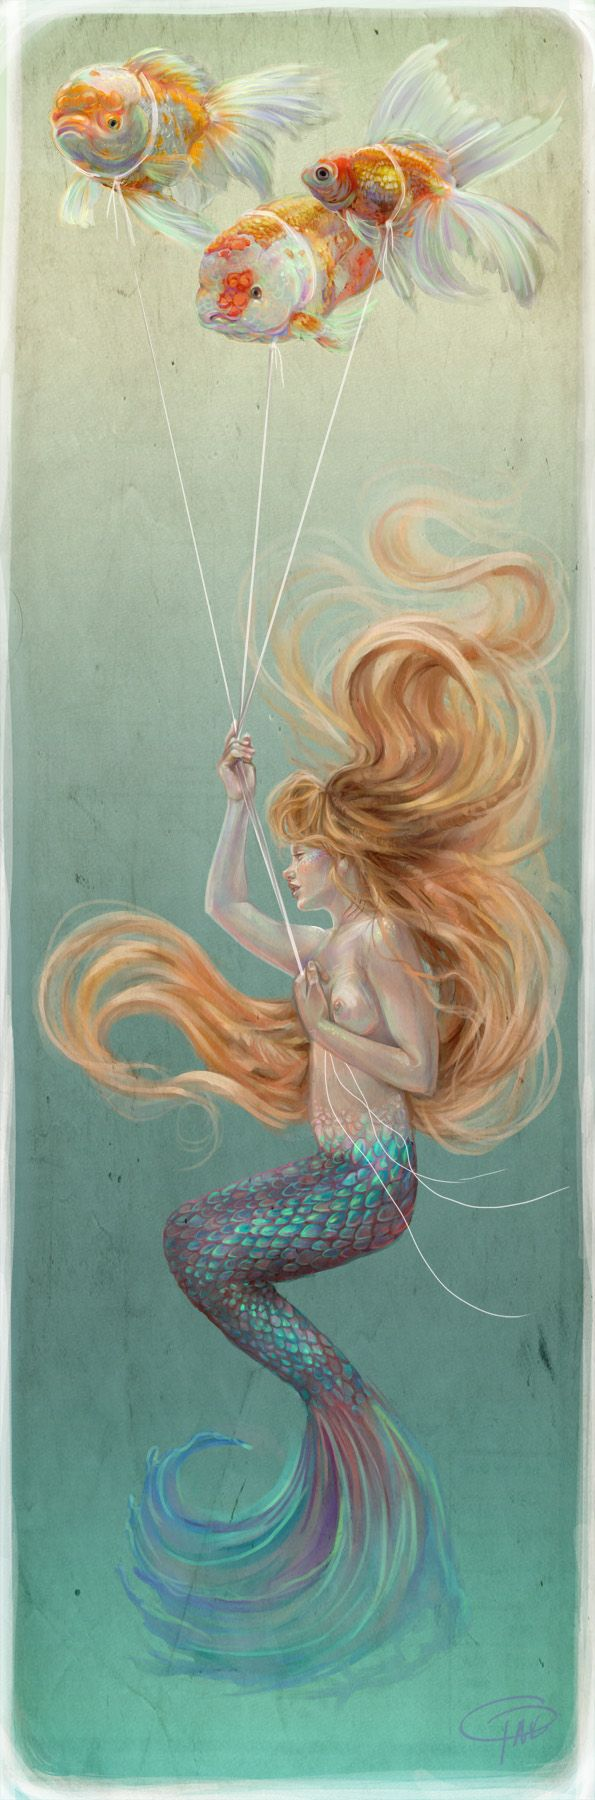 ♥ This is absolutely beautiful ♥ Mermaid with Goldfish Balloons by MissTakArt.deviantart